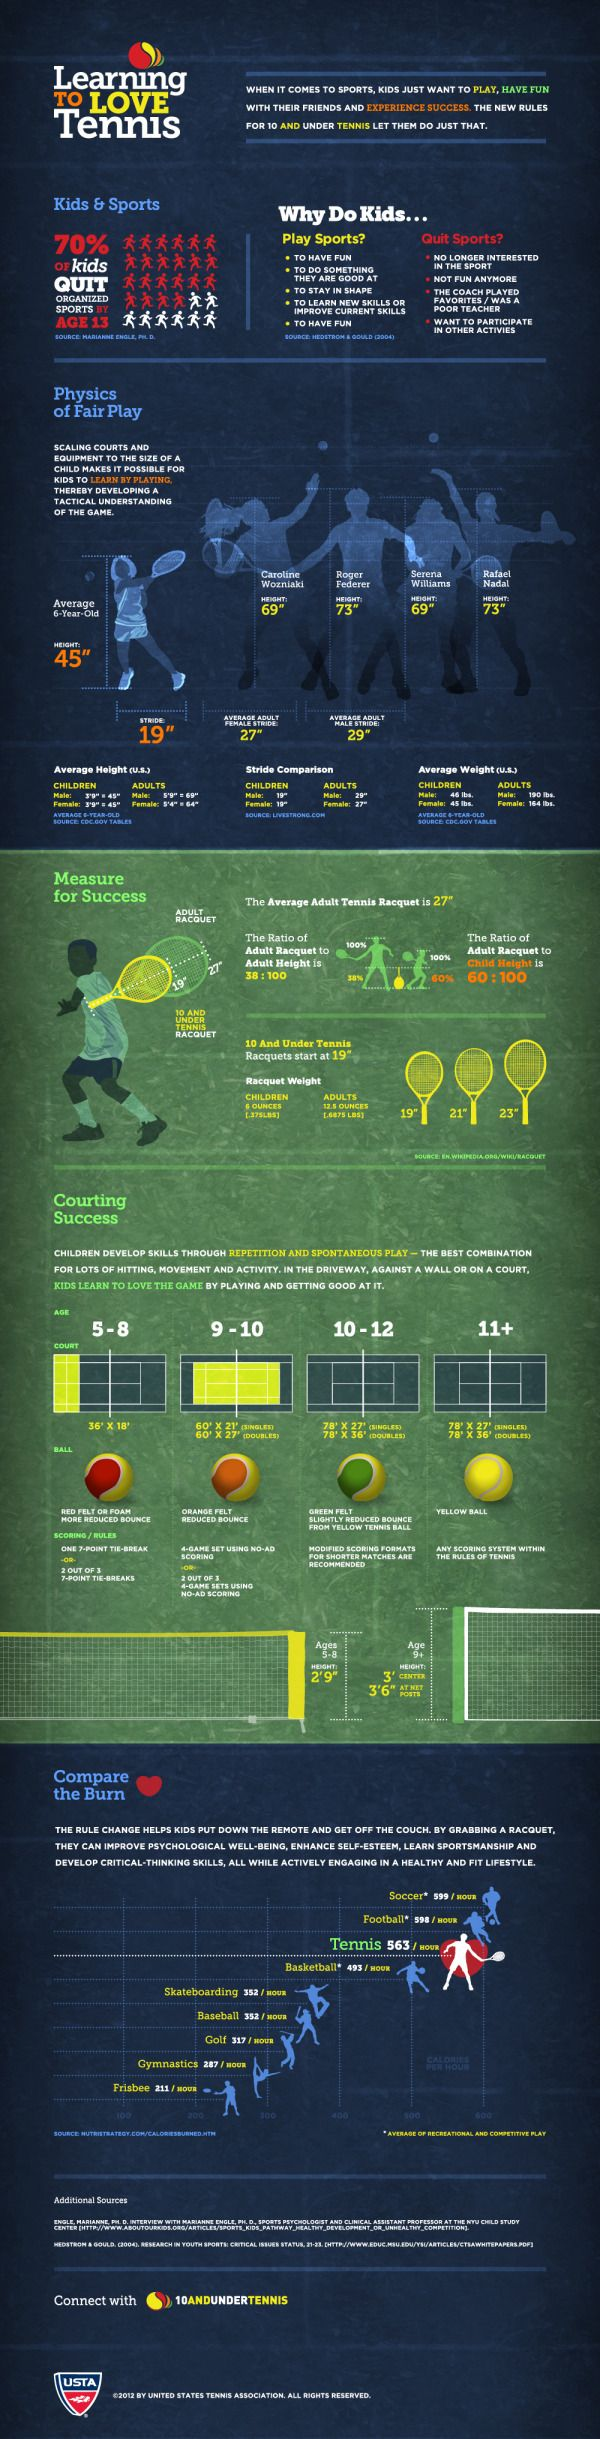 Think you can't love tennis? Think again, this infographic provides fun facts and critical information for the game of tennis and it's physical and me